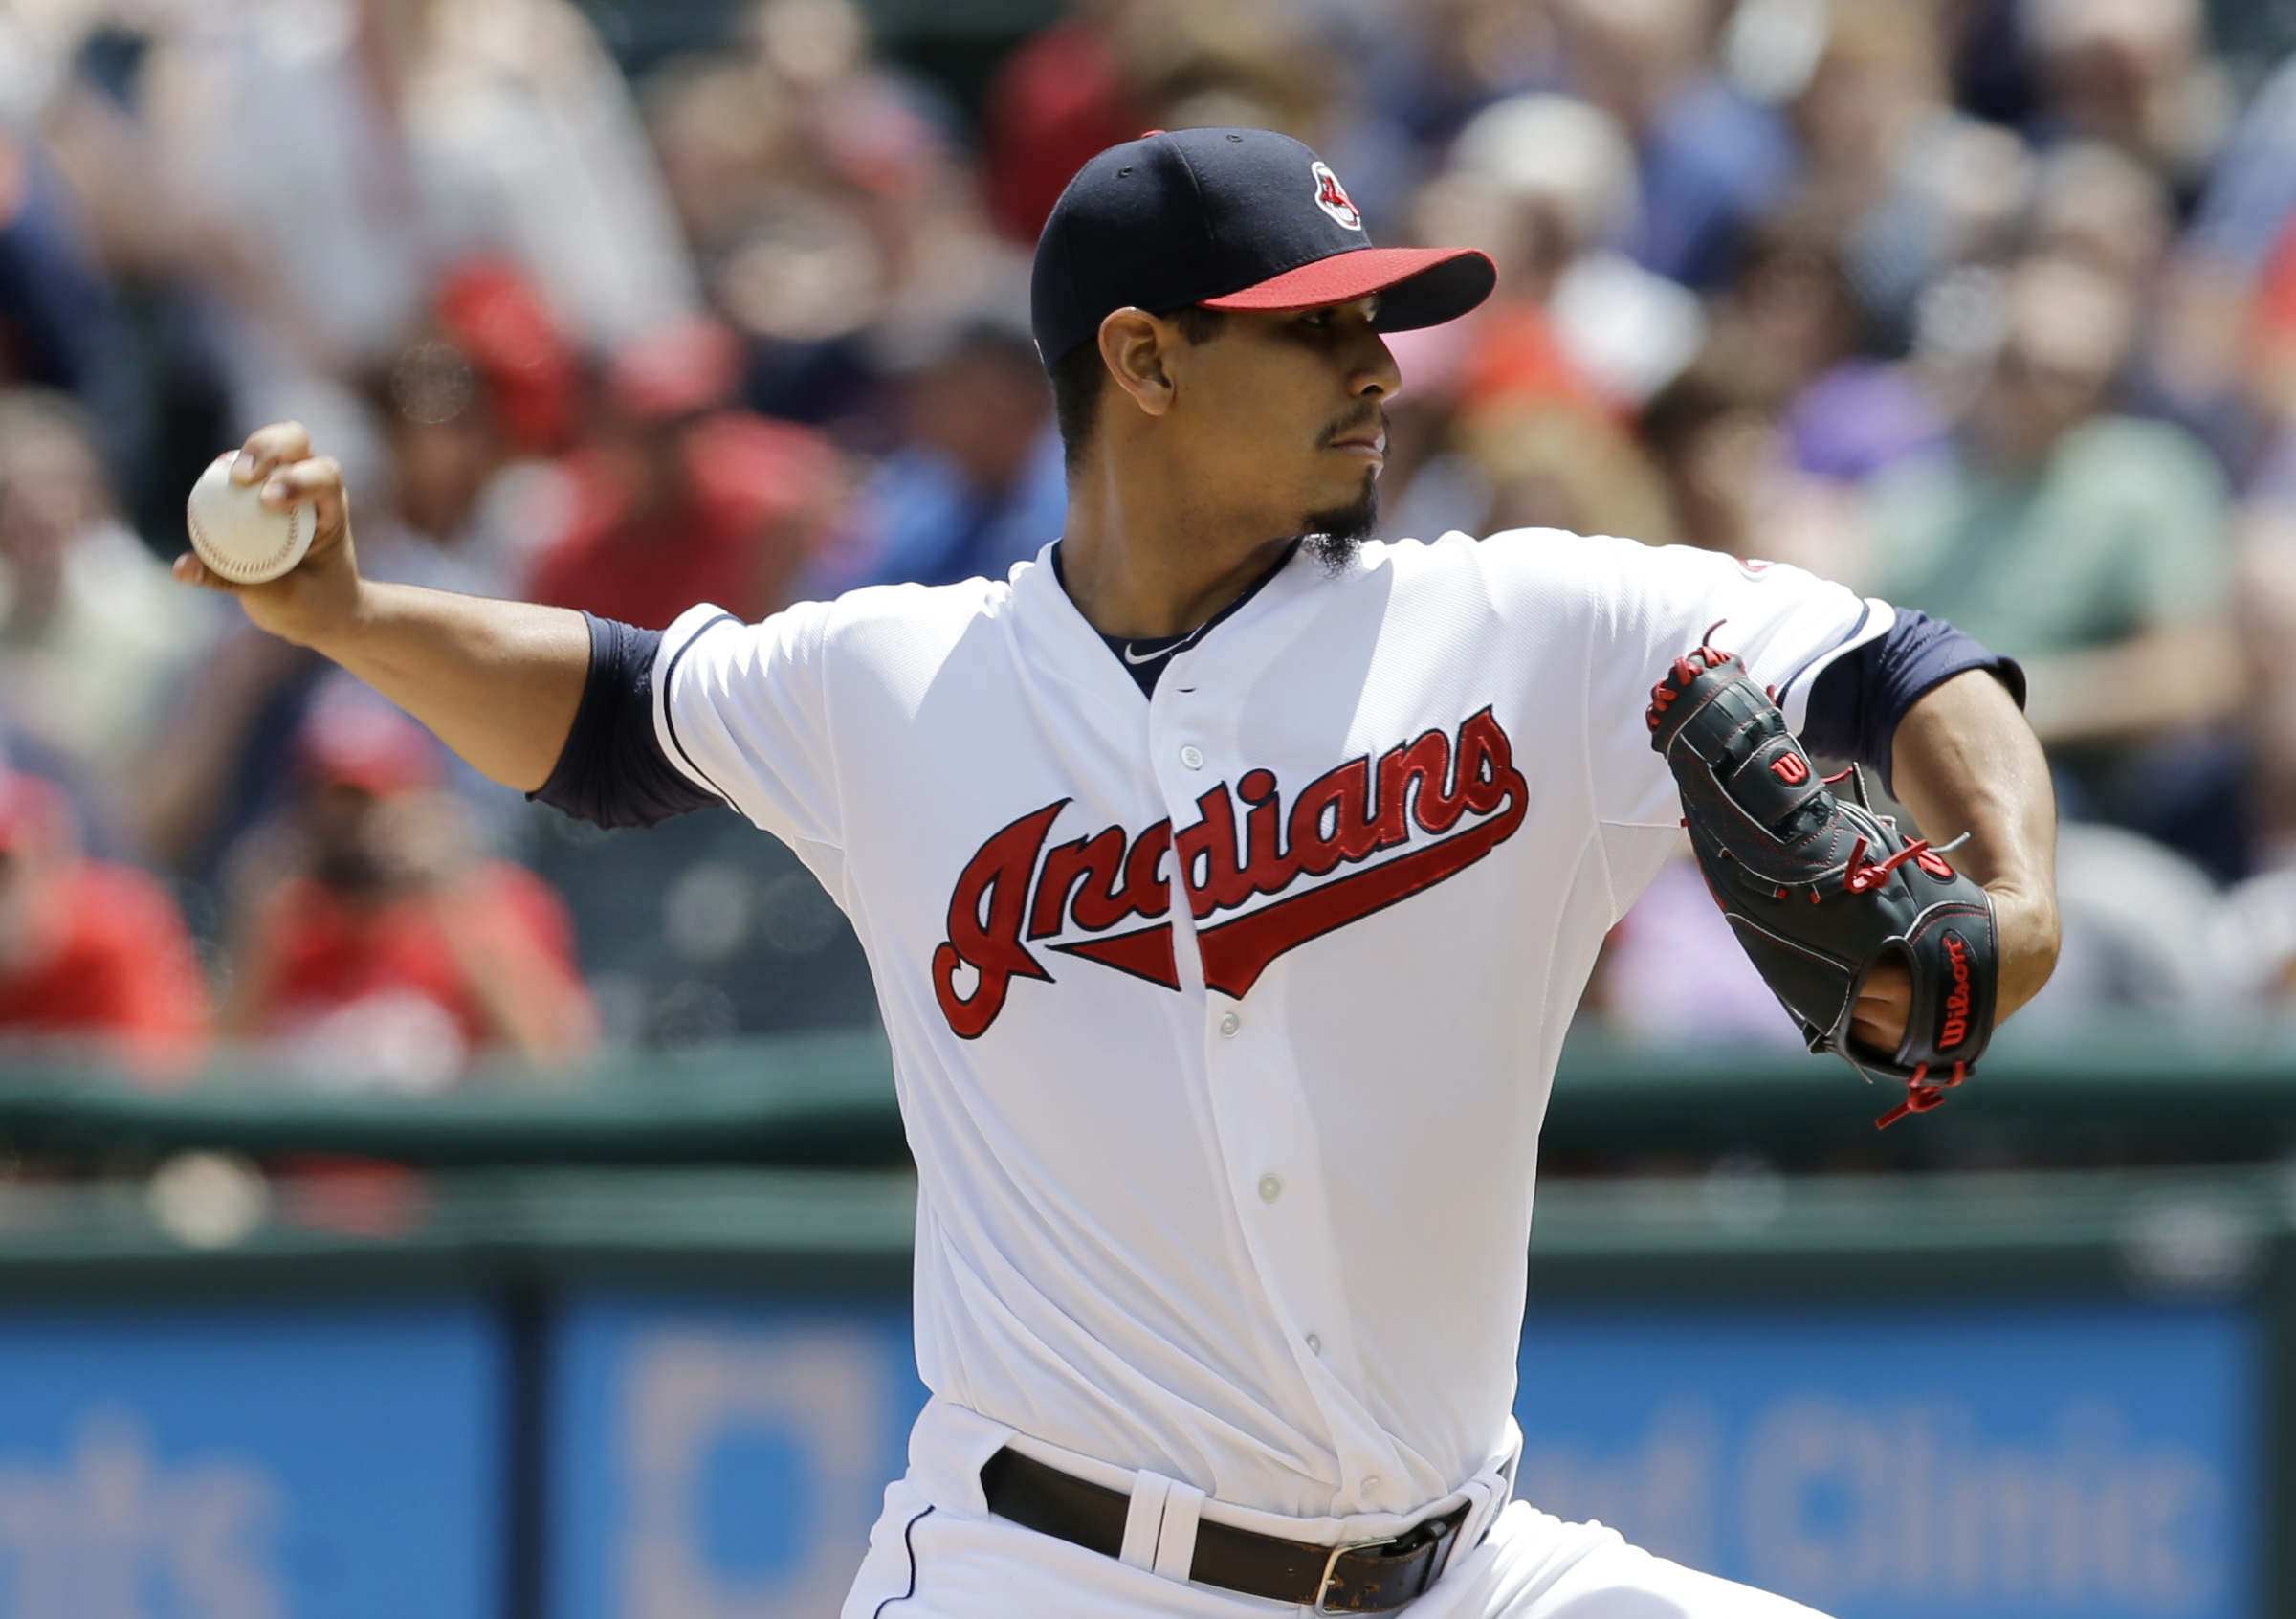 Cleveland Indians starting pitcher Carlos Carrasco delivers in the first inning of a baseball game against the Detroit Indians, Wednesday, June 24, 2015, in Cleveland. (AP Photo/Tony Dejak)